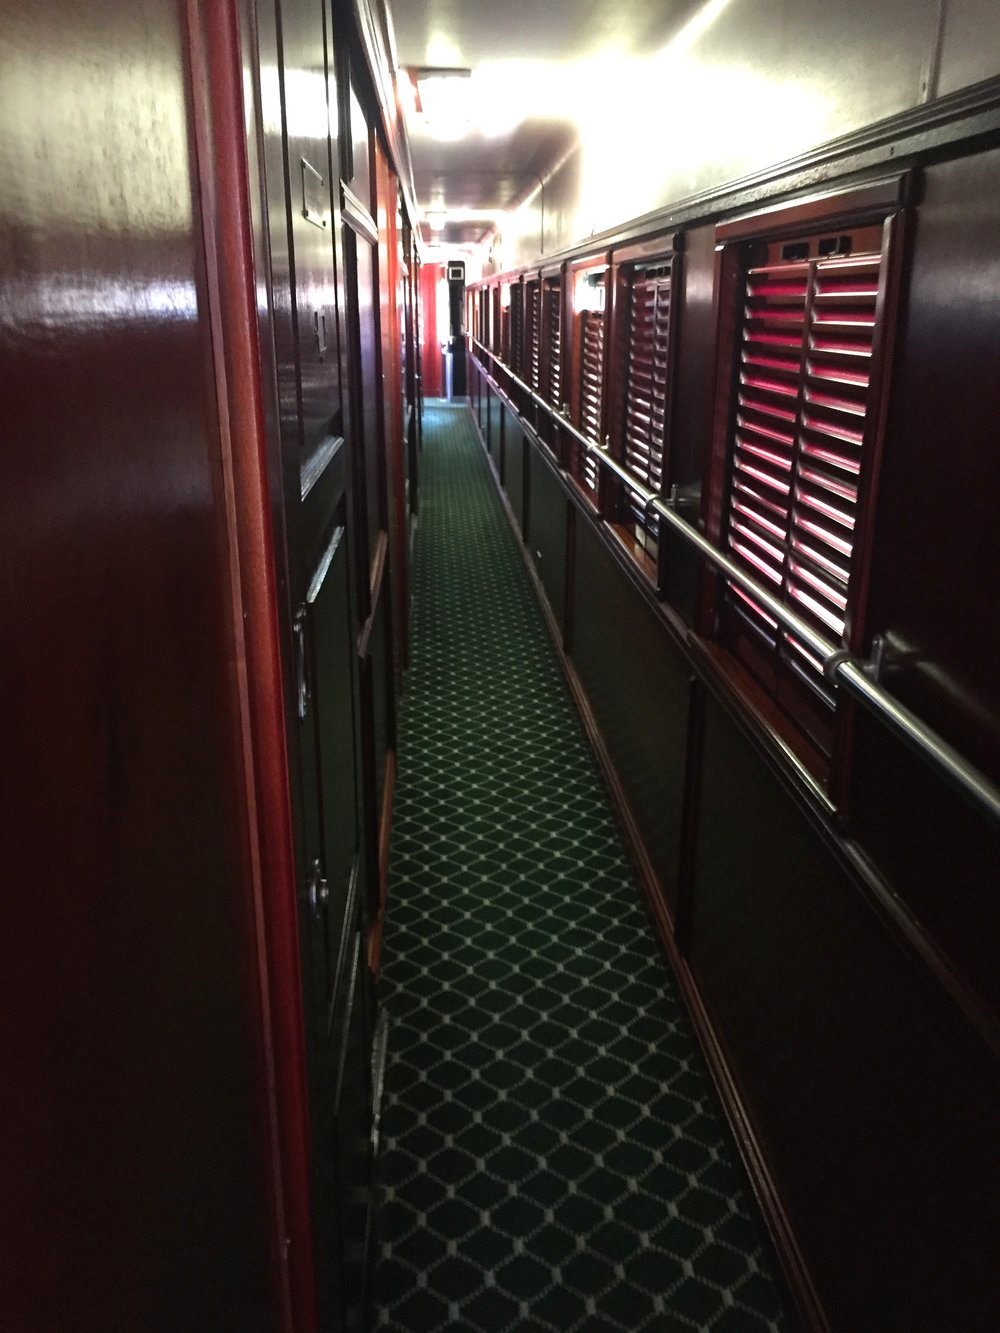 The paneling makes the old coaches reek of character.